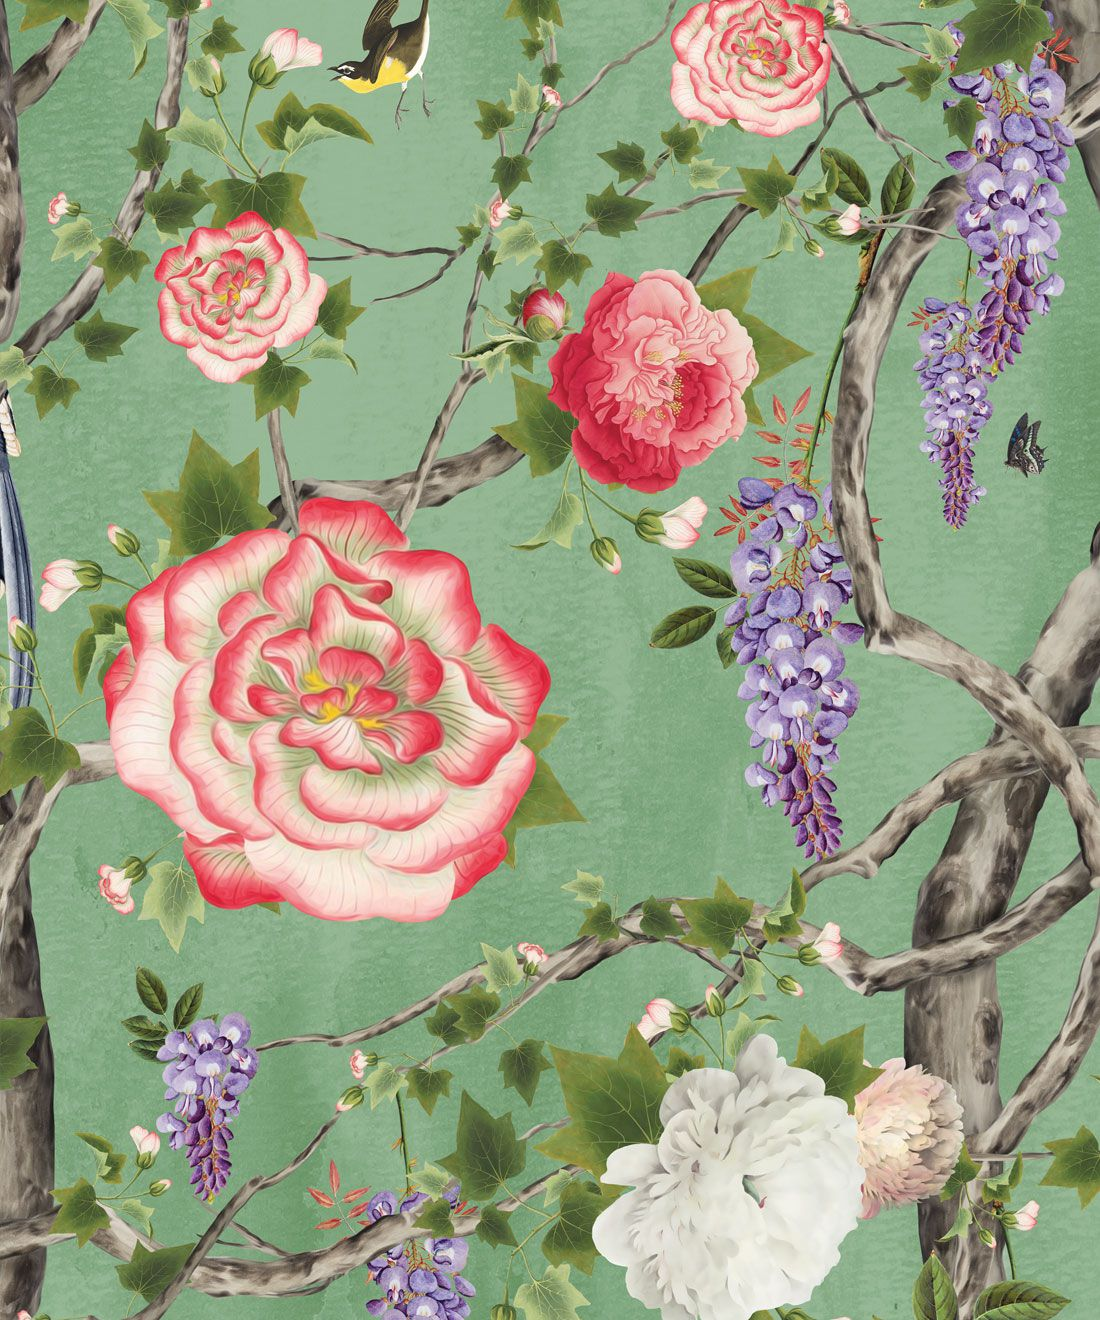 Empress Wallpaper • Romantic Wallpaper • Floral Wallpaper • Chinoiserie Wallpaper • Tea Garden Green colour wallpaper swatch